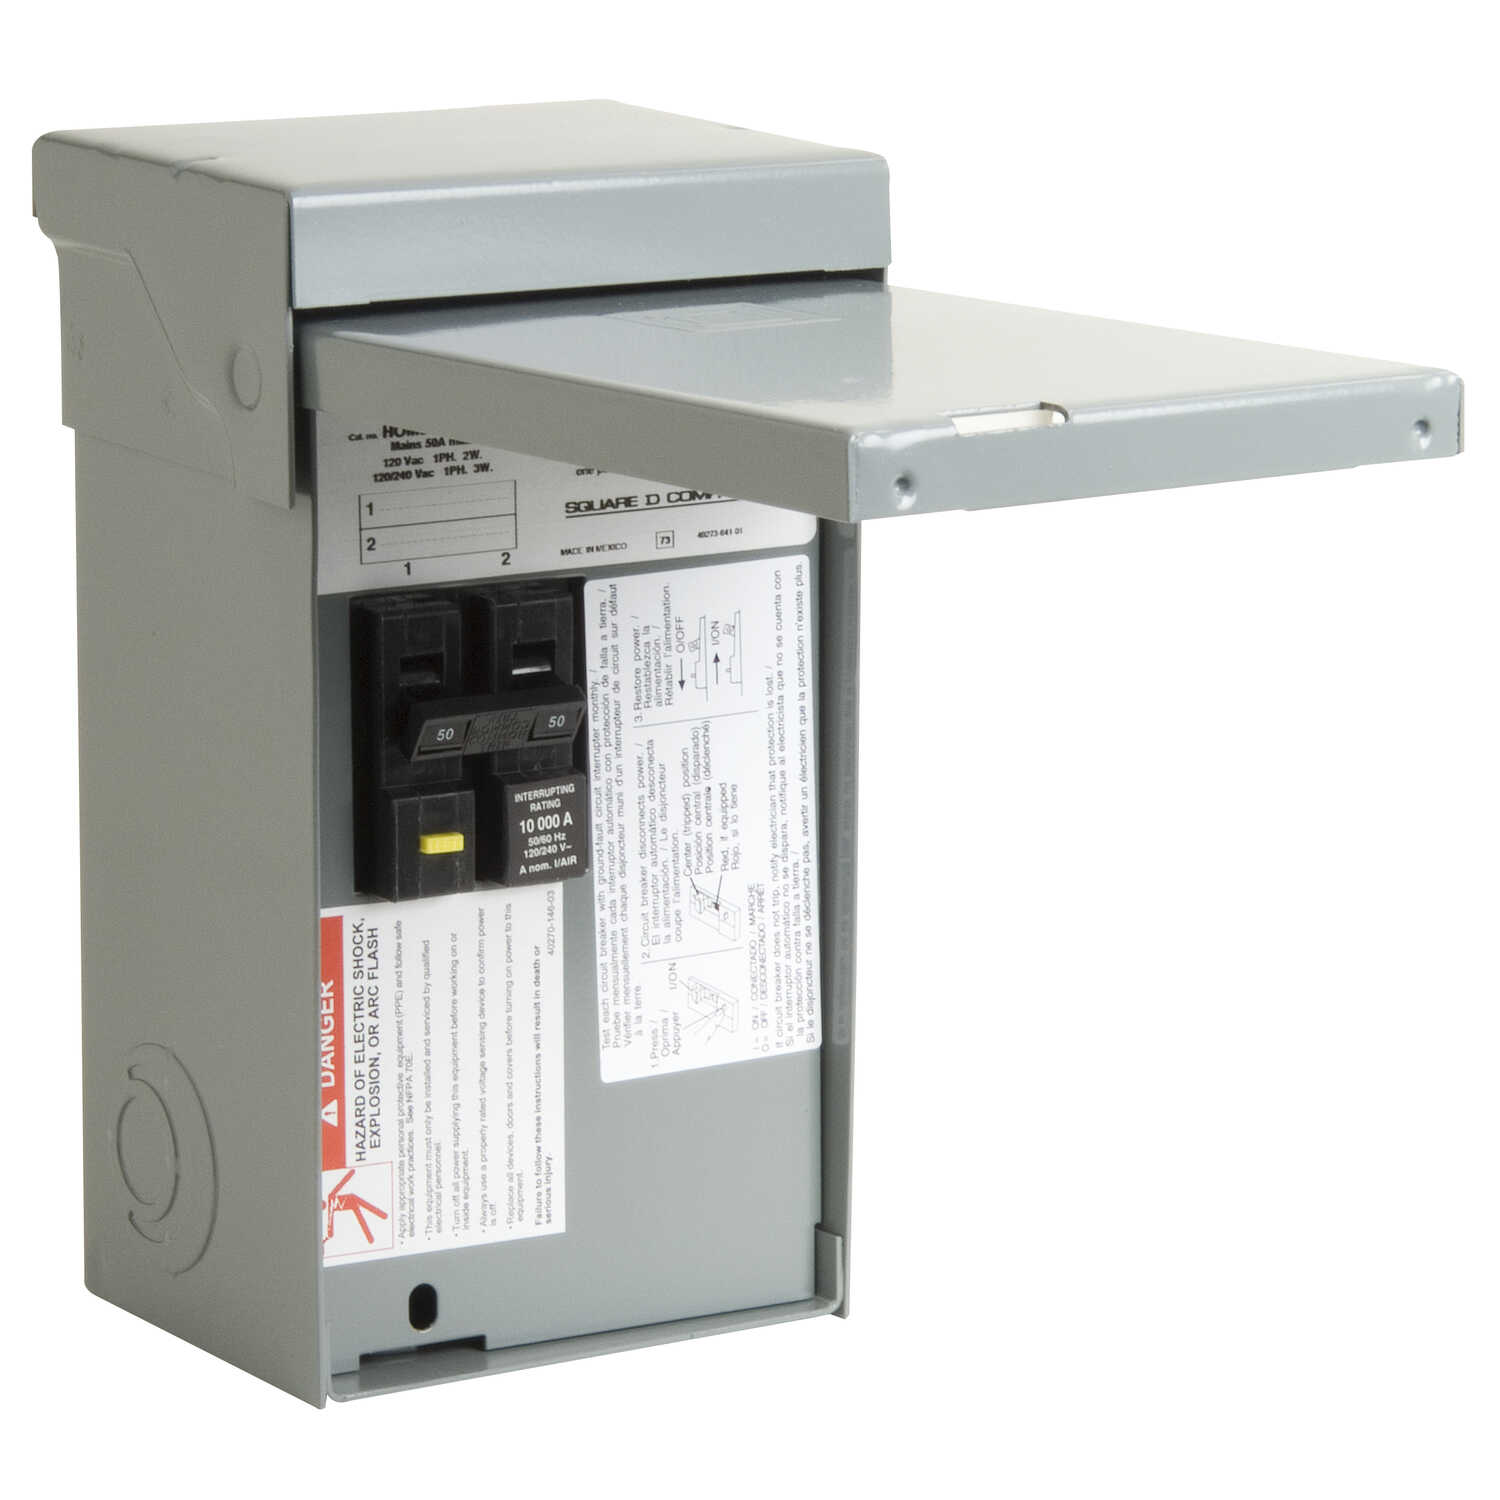 Square D 50 amps 120/240 volt 2 space 4 circuits Bolt-On ... on 50 amp breaker wiring, 200 amp load center wiring, 50 amp sub panel wiring, 30 amp load center wiring, 50 amp outlet wiring, 50 amp disconnect wiring,